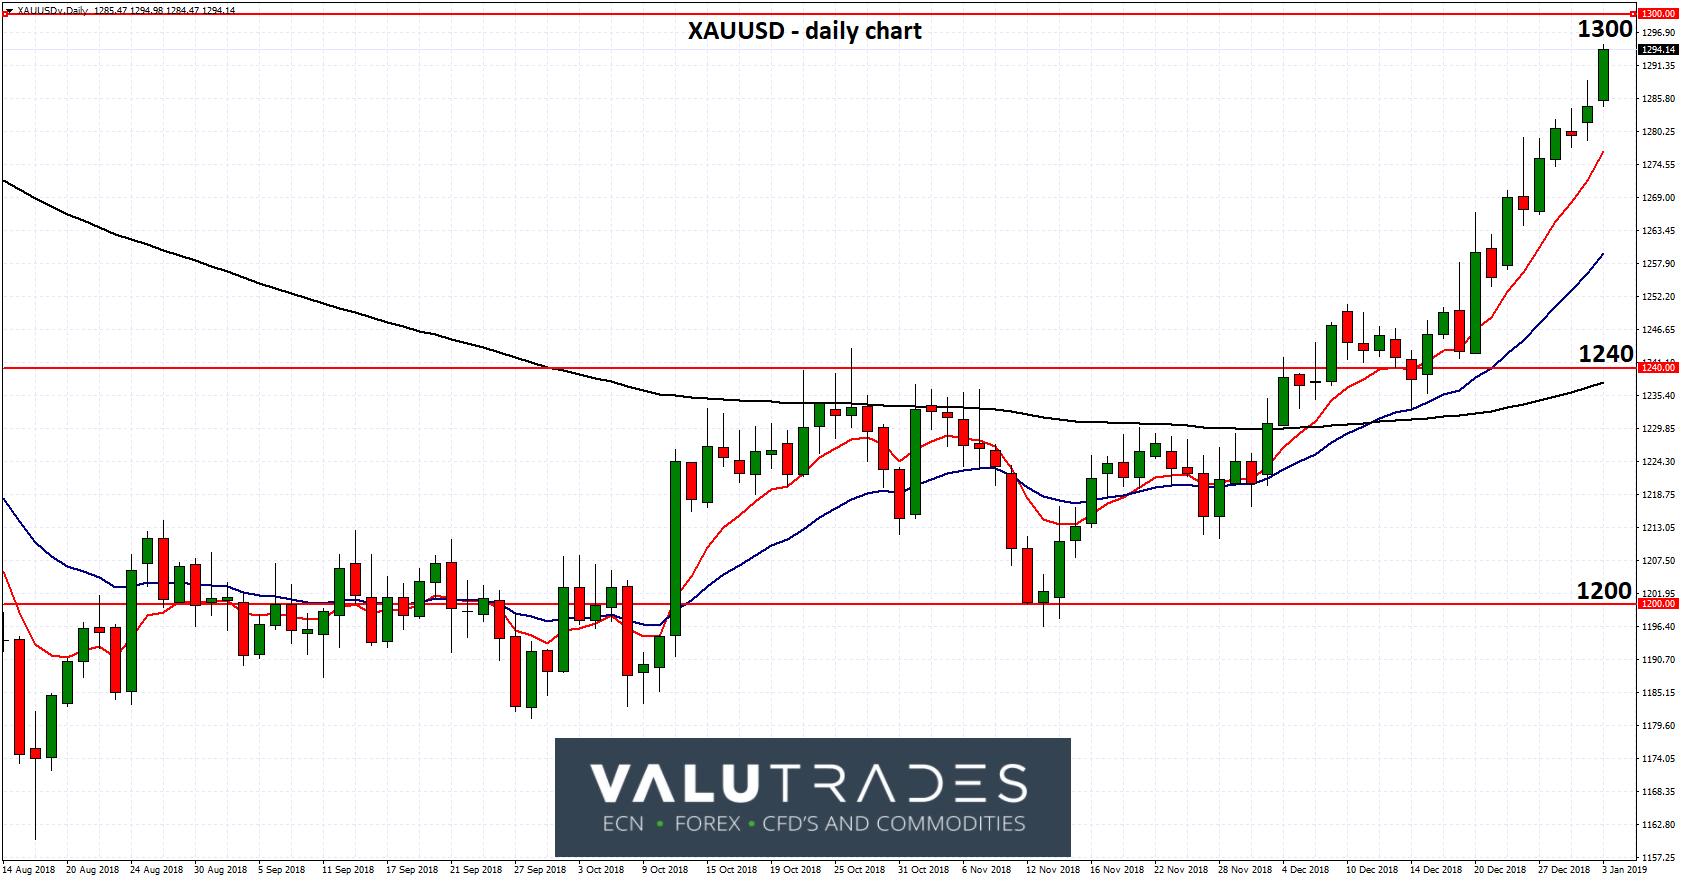 XAUUSD - Surges to Six Month High on Rising Fears of Economic Slowdown